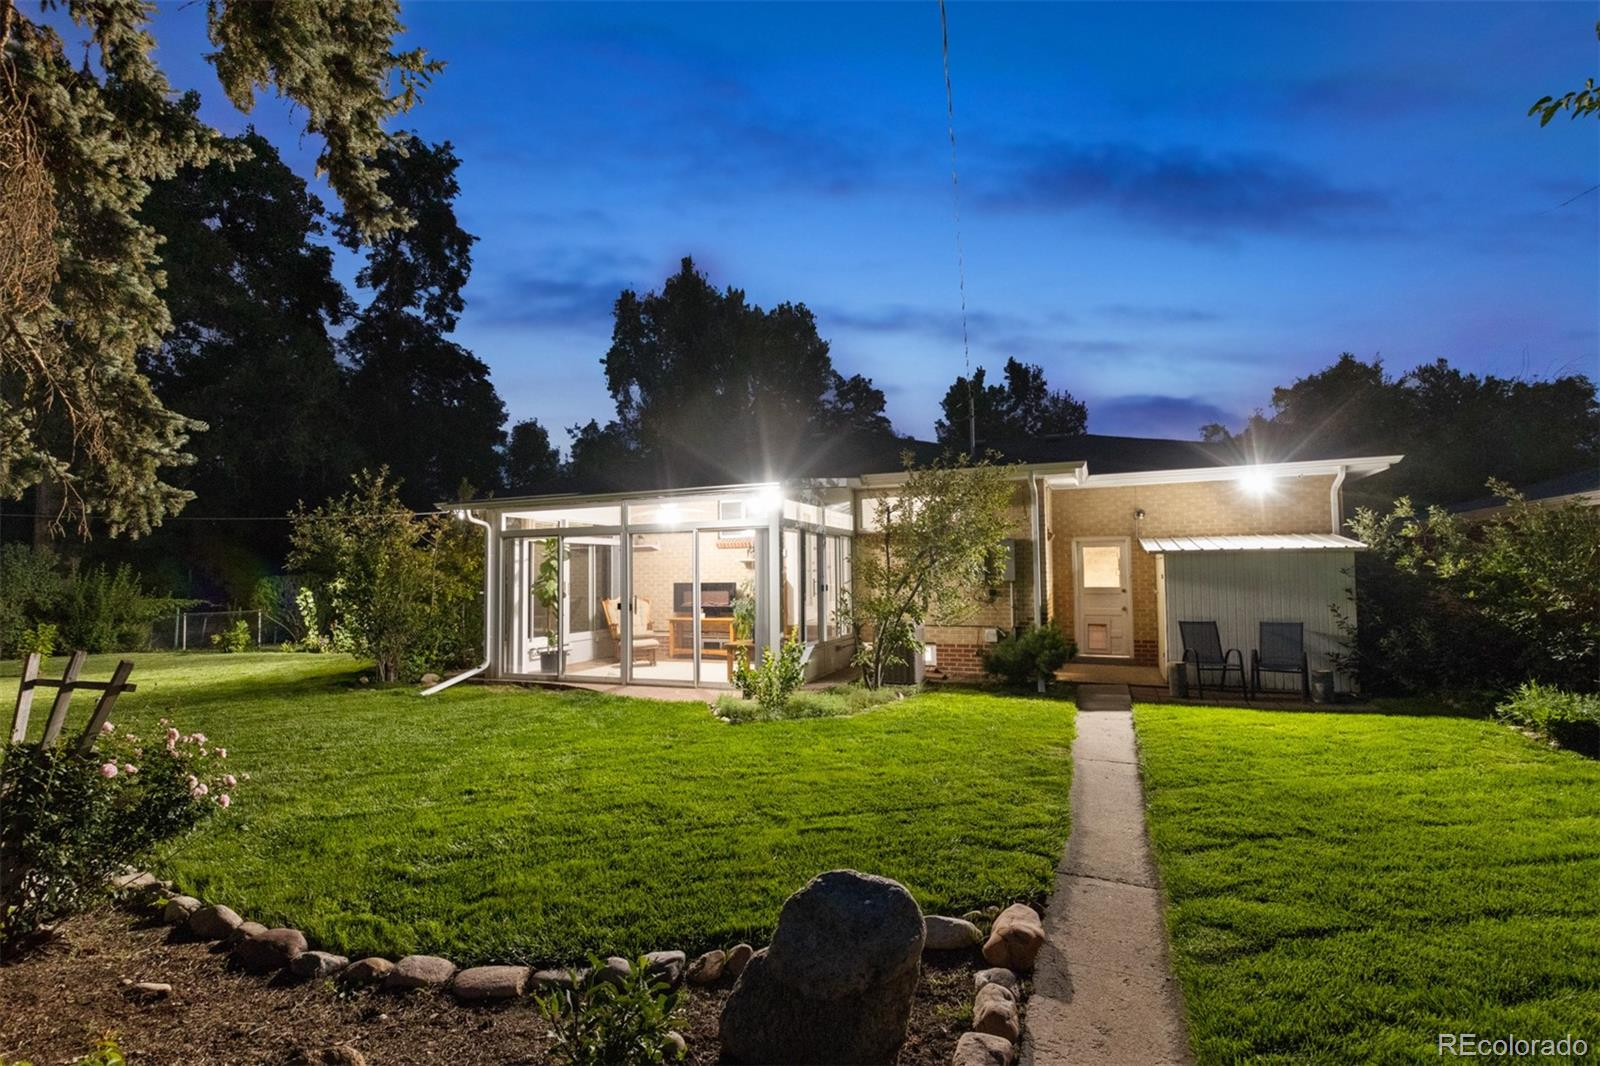 MLS# 3953143 - 33 - 3075 Quay Street, Wheat Ridge, CO 80033